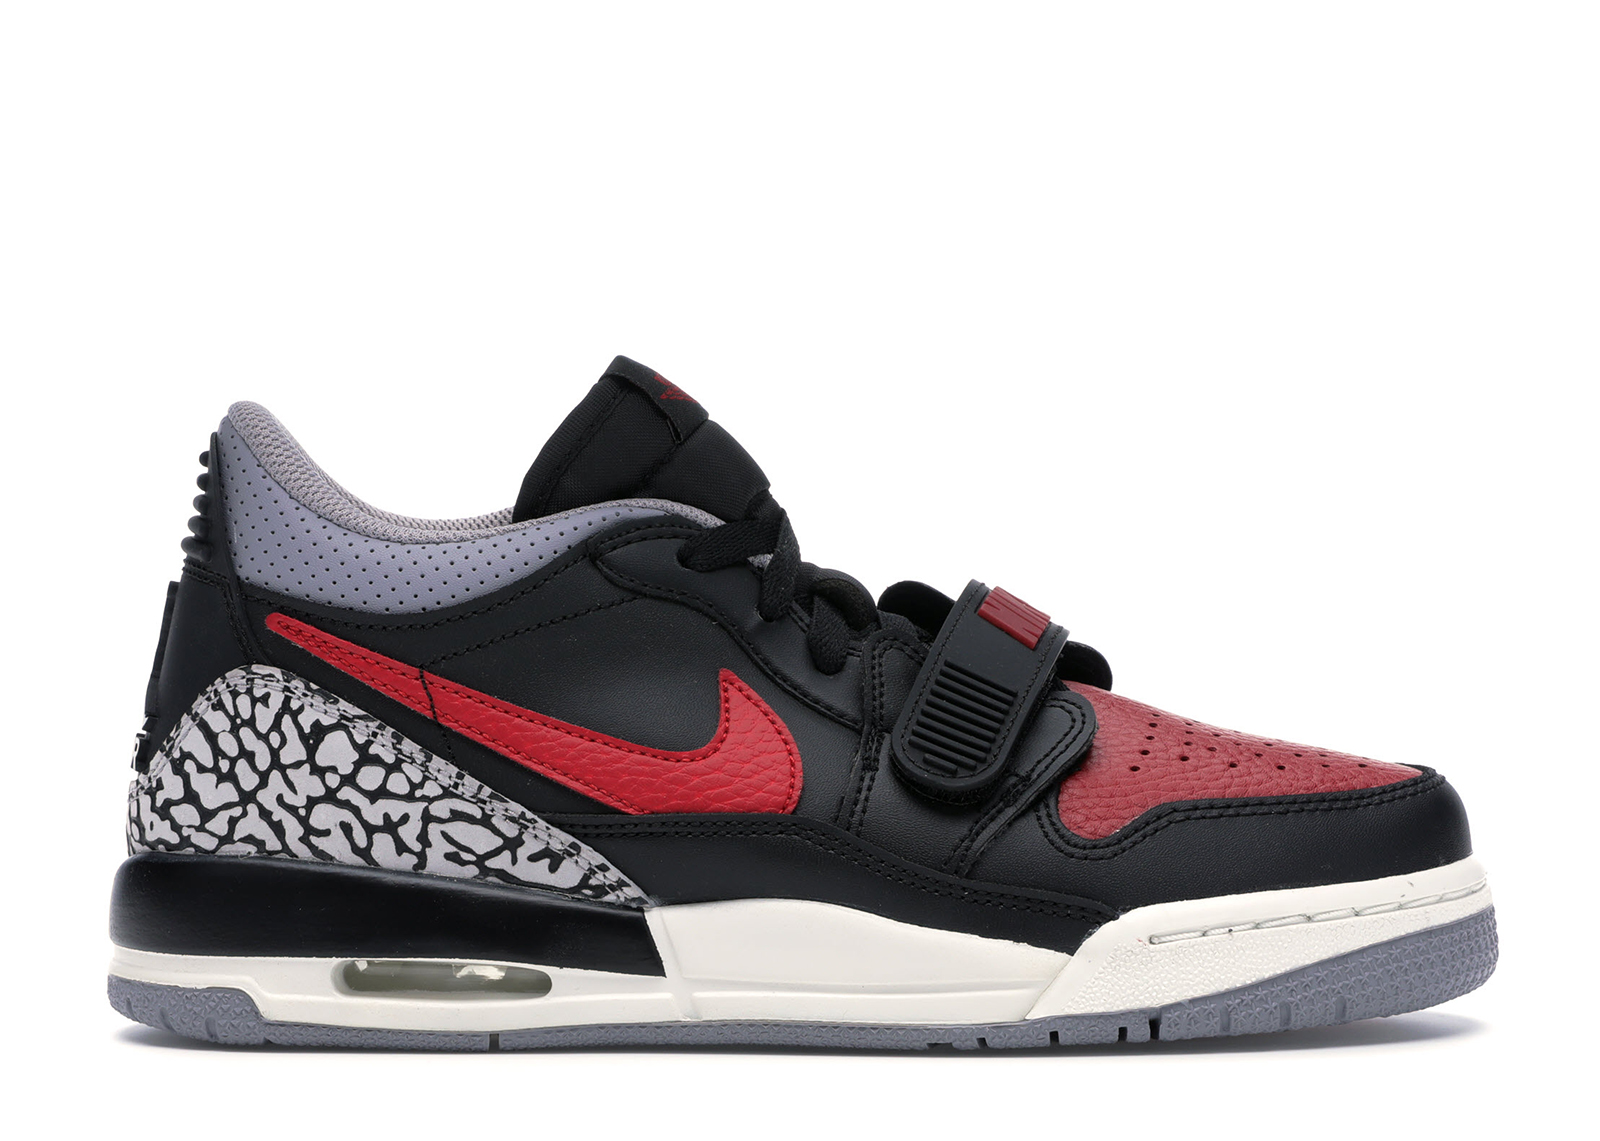 Nike Jordan Air Jordan Legacy 312 Low | Space23